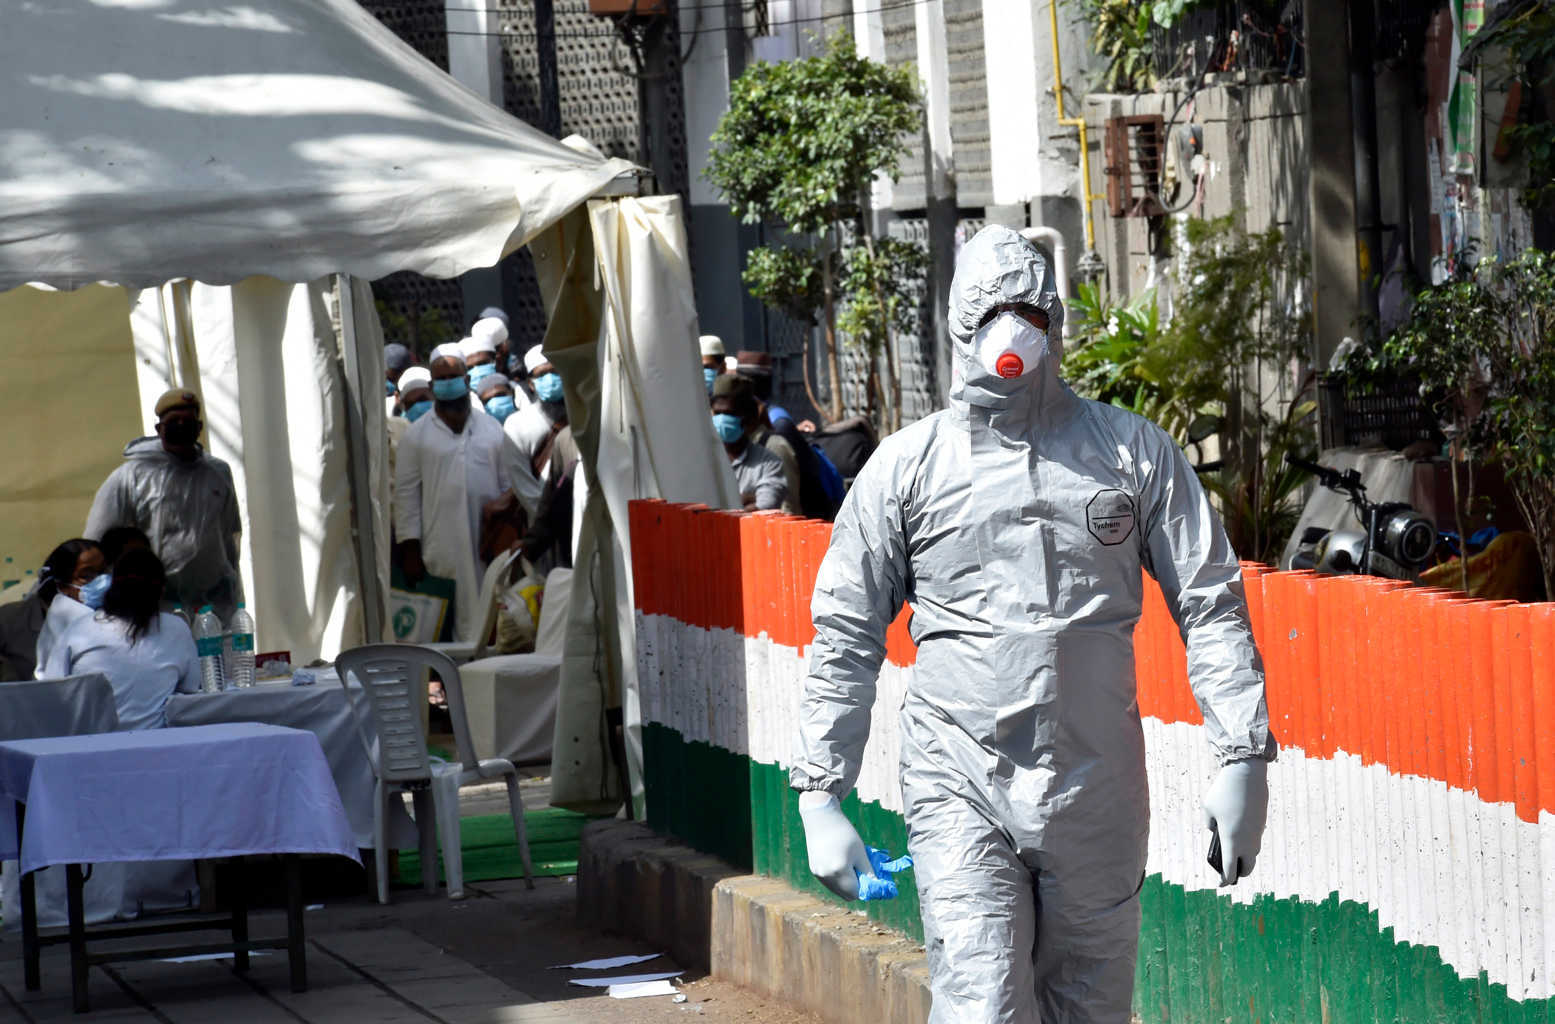 NEW DELHI, INDIA - MARCH 31: A bus driver in a protective suit before ferrying people who took part in a Tablighi Jamaat function earlier this month to a quarantine facility amid concerns of infection, on day 7 of the 21 day nationwide lockdown imposed by PM Narendra Modi to check the spread of coronavirus, at Nizamuddin West on March 31, 2020 in New Delhi, India. (Photo by Ajay Aggarwal/Hindustan Times via Getty Images)